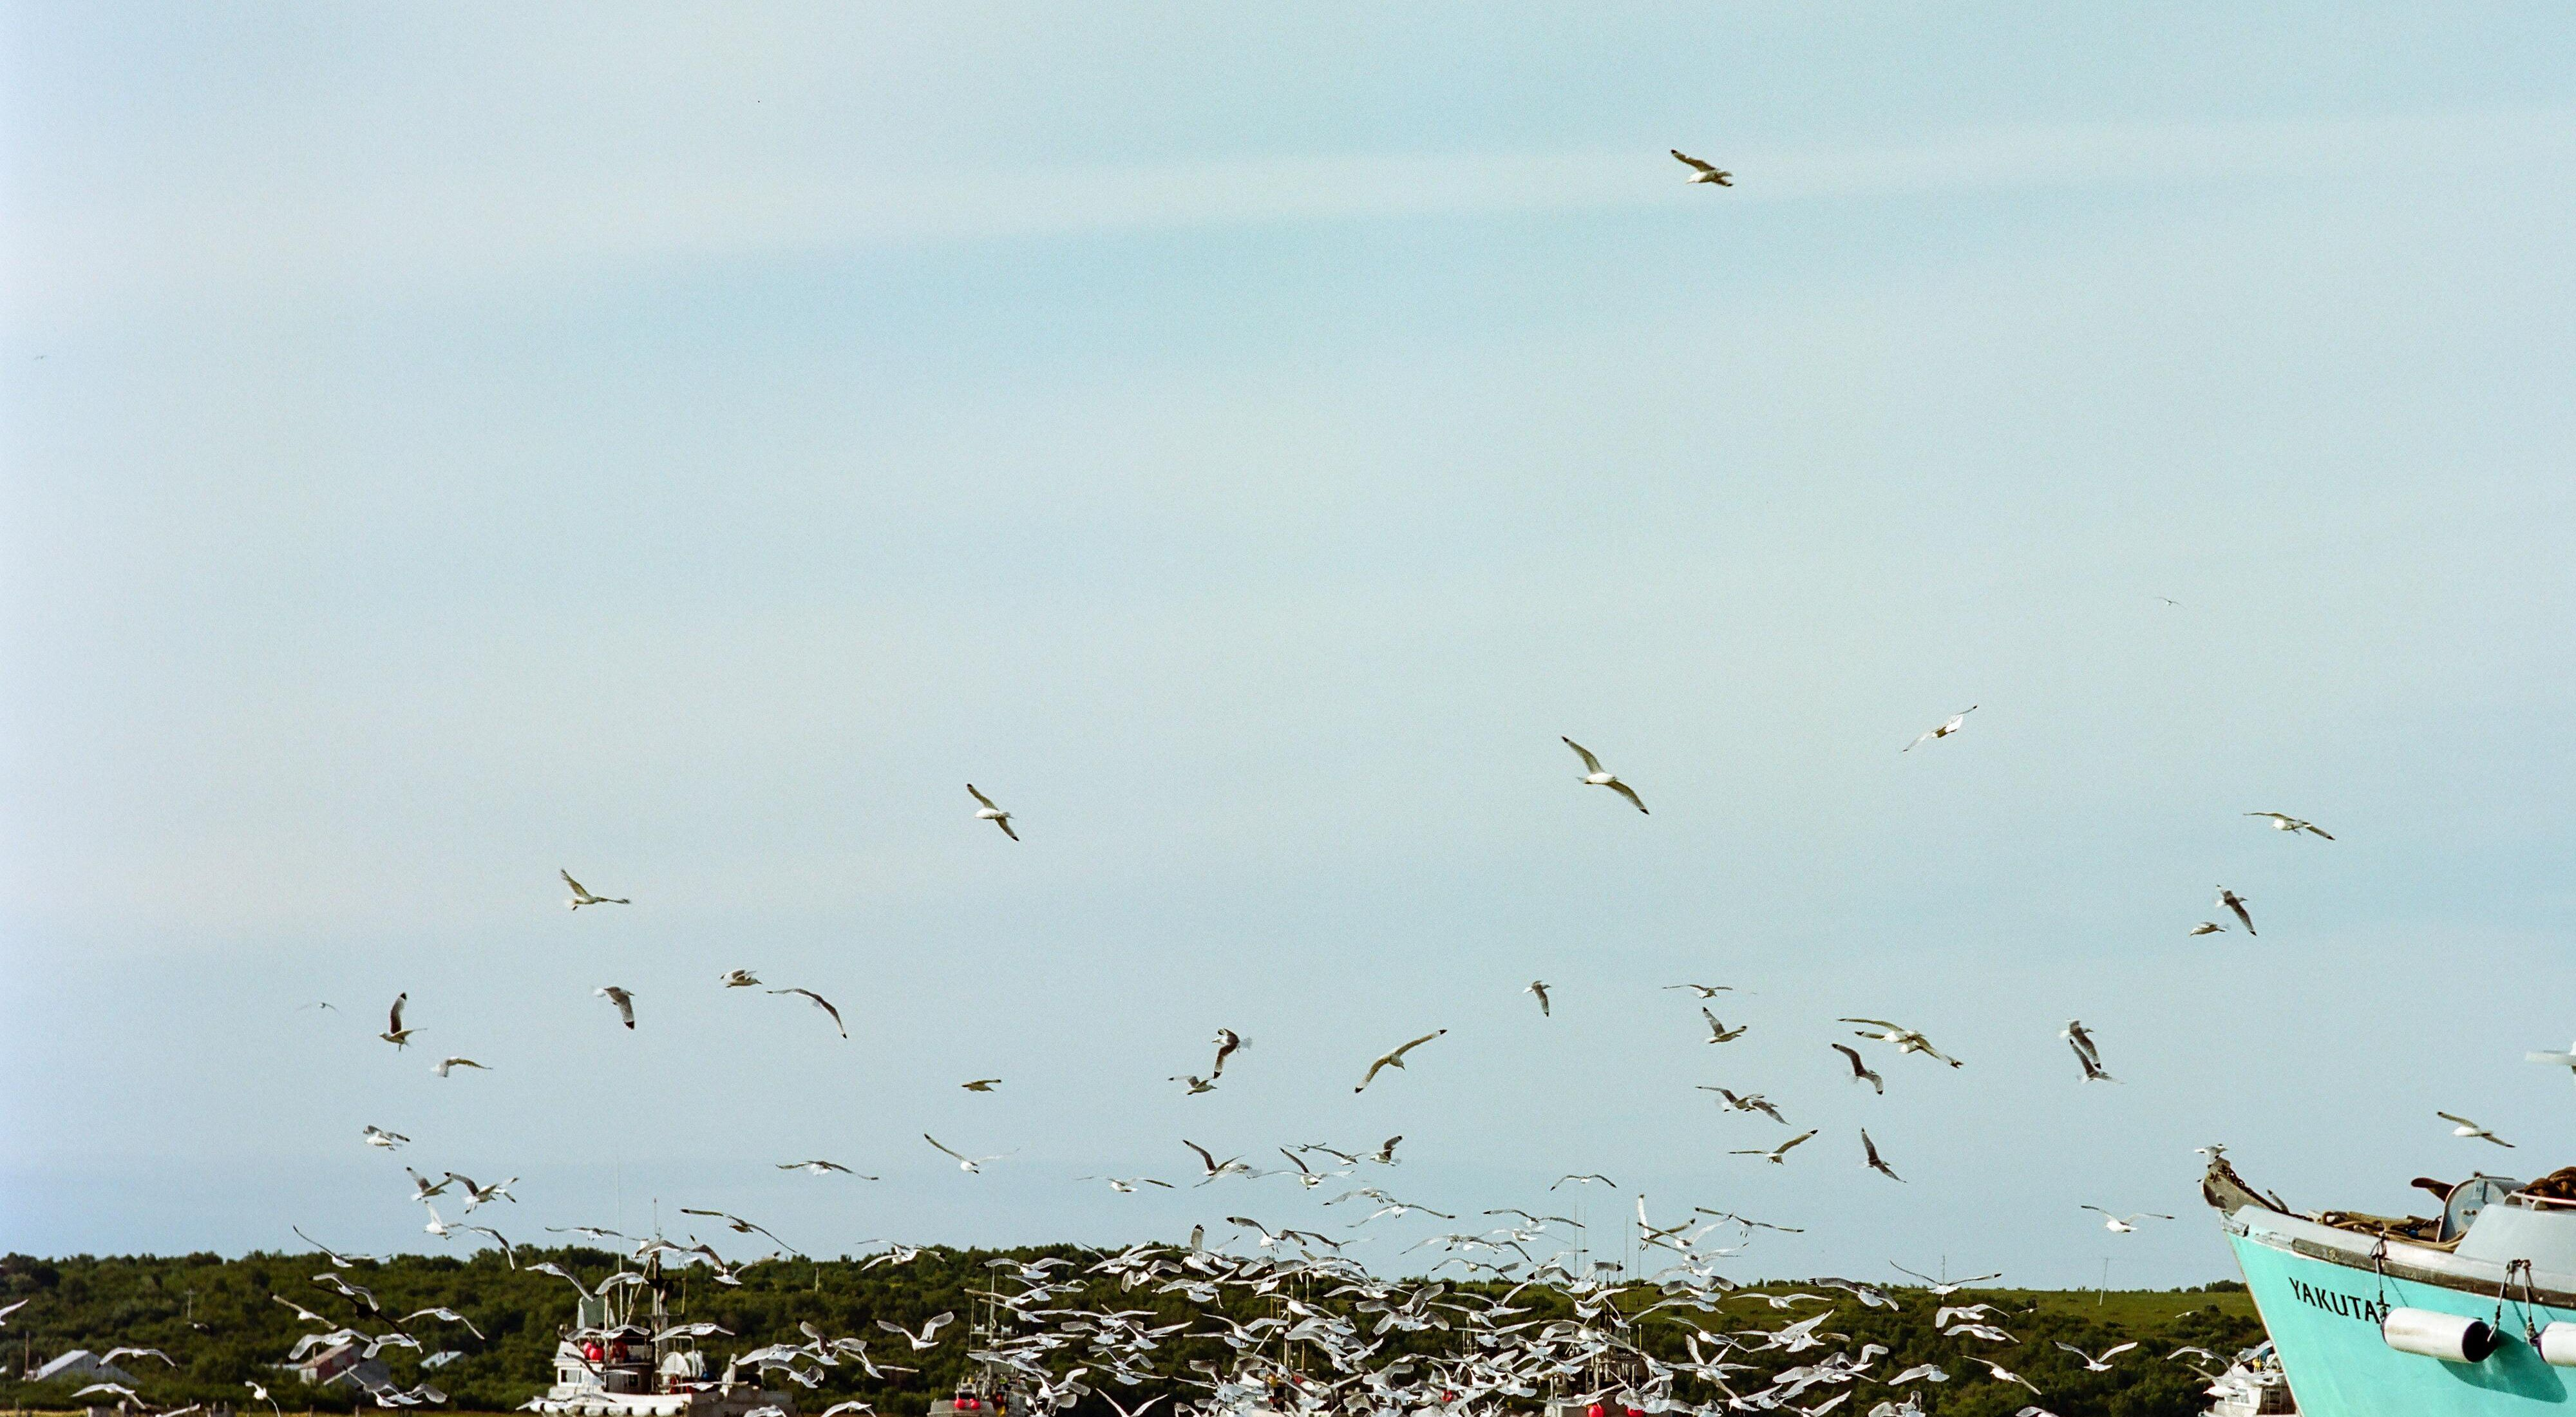 Several salmon fishing boats surrounded by gulls.